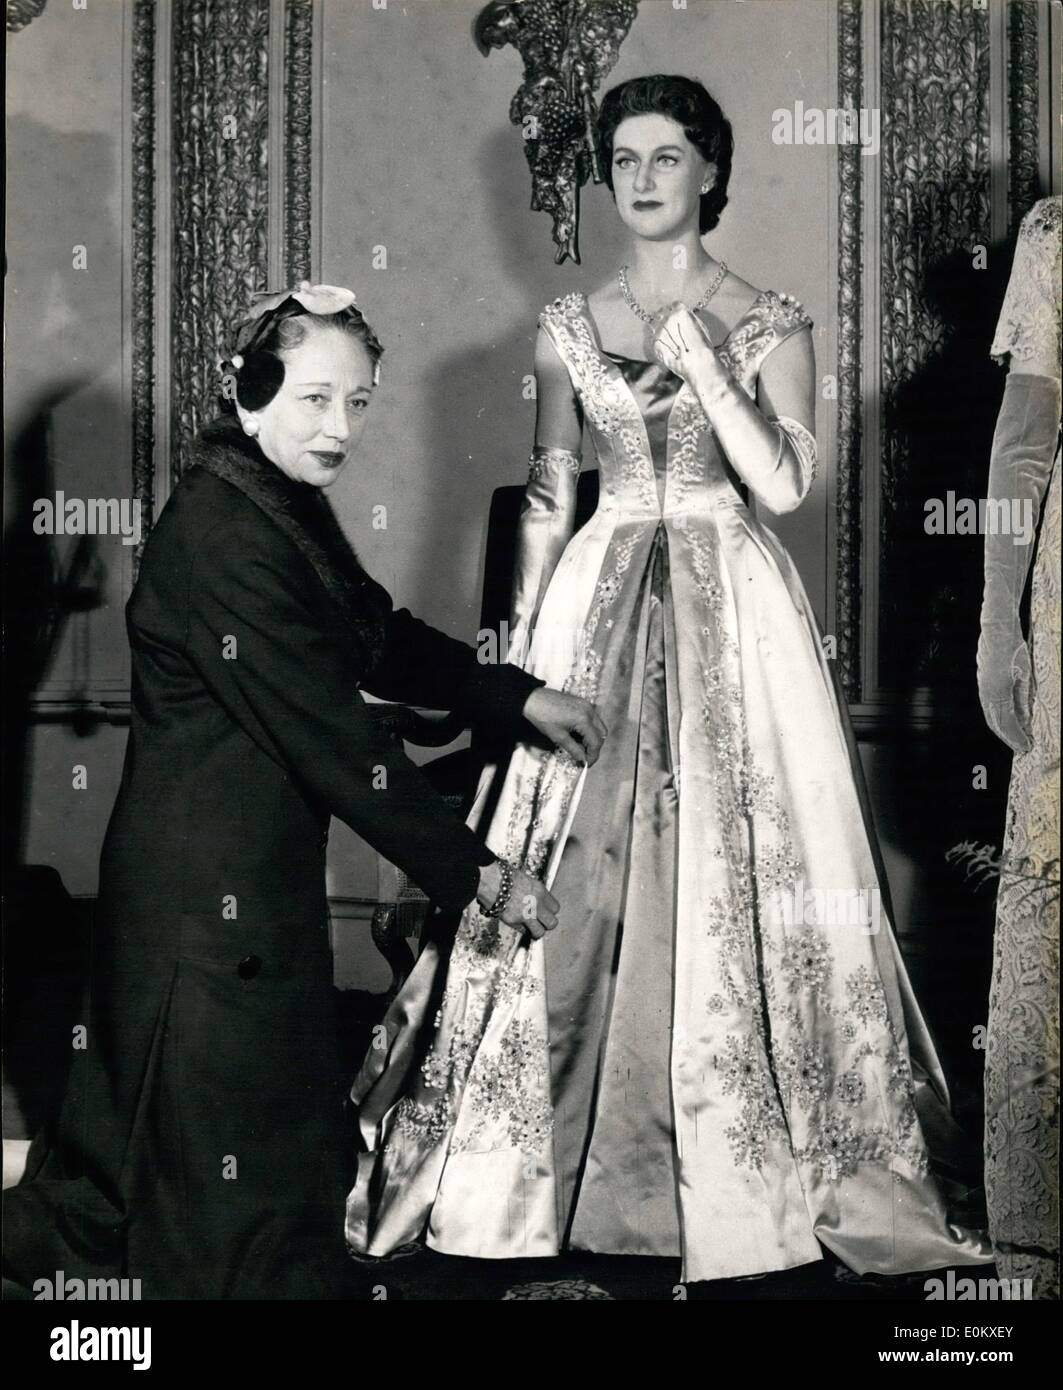 Jun. 06, 1952 - Princess Margaret's new wax effigy at Tussaud's: Miss Denise of Norman Hartnell's adjusts the gown worn by the wax figure of H. R. R. Princess Margaret. which wear a ball gown similar to one she wore on her Carribean Tour. It is of honey - coloured satin, with a centre panel in a deeper tone down the centre. It is flared from the waist into a full skirt. The dress has delicate tracery of embroidery in beads and pailettes which empasize the two tones of the satin. Long matching gloves are worn, and the only jewellry is a single row of diamonds and small stud earrings - Stock Image